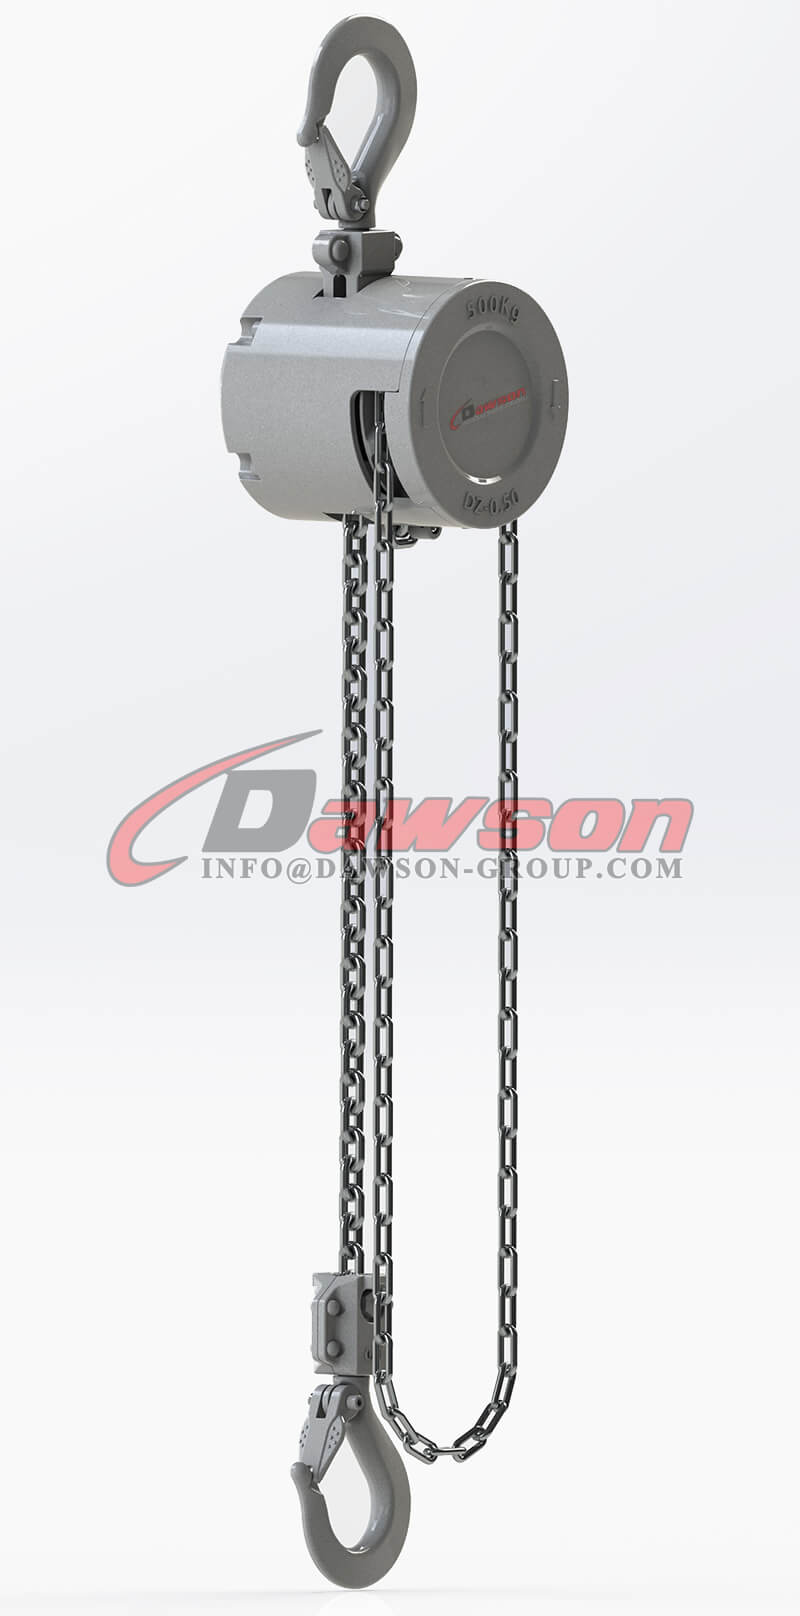 250KG Mini Aluminum Alloy Chain Hoist, Chain Block - Dawson Group Ltd. - China Manufacturer (2)